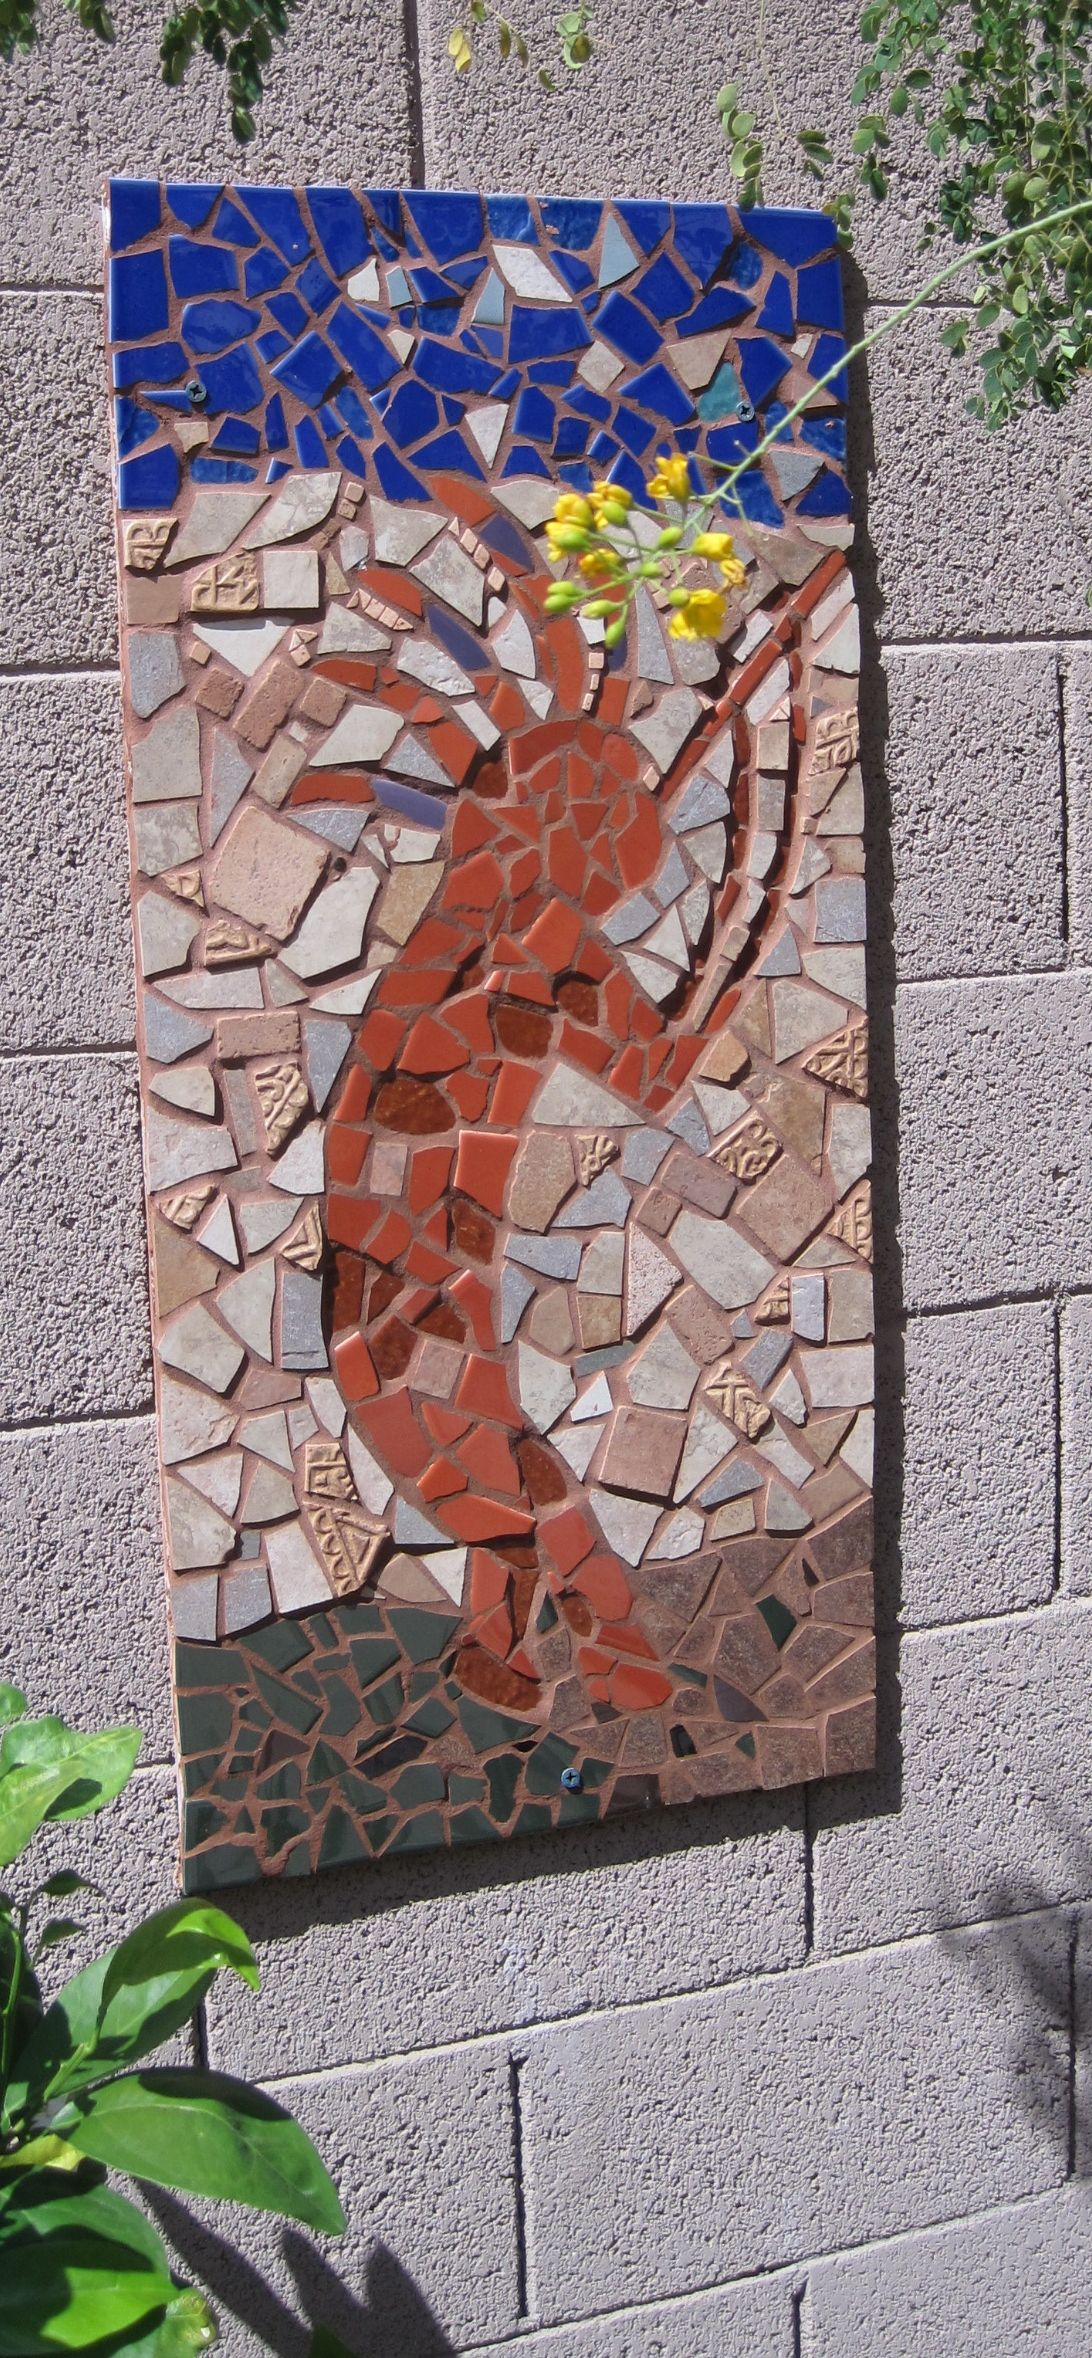 Kokopelli Mosaic For Our Garden Wall I Used Concrete Board The Backing Most Difficult Part Is Finding Right Colored Tiles At A Reasonable